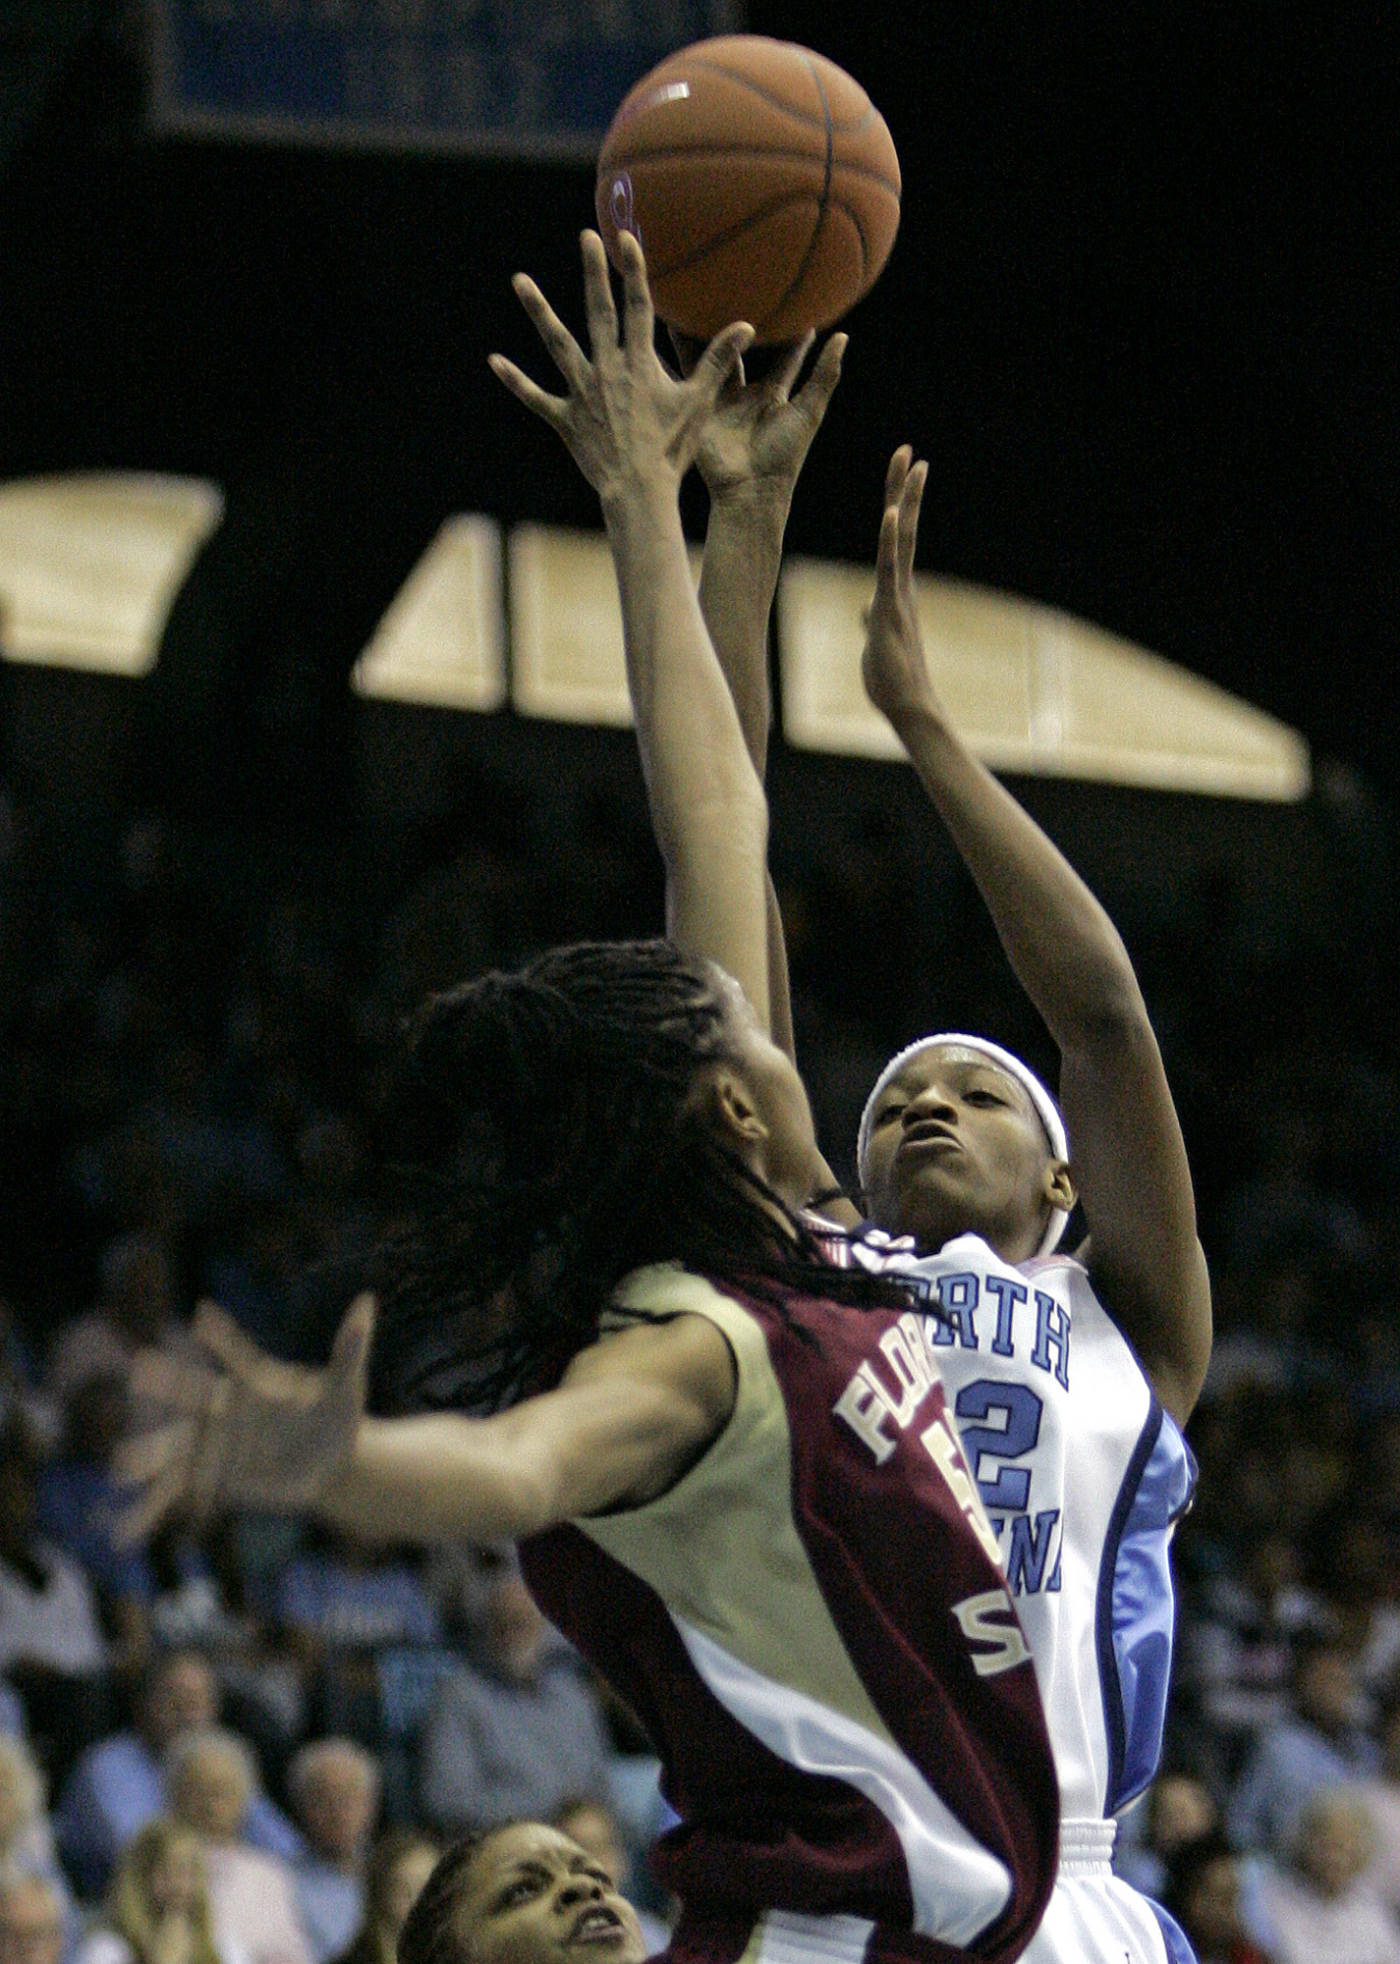 North Carolina's Rashanda McCants, right, shoots as Florida State's Jacinta Monroe defends during the first half of a college basketball game in Chapel Hill, N.C., Sunday, Feb. 17, 2008. (AP Photo/Gerry Broome)